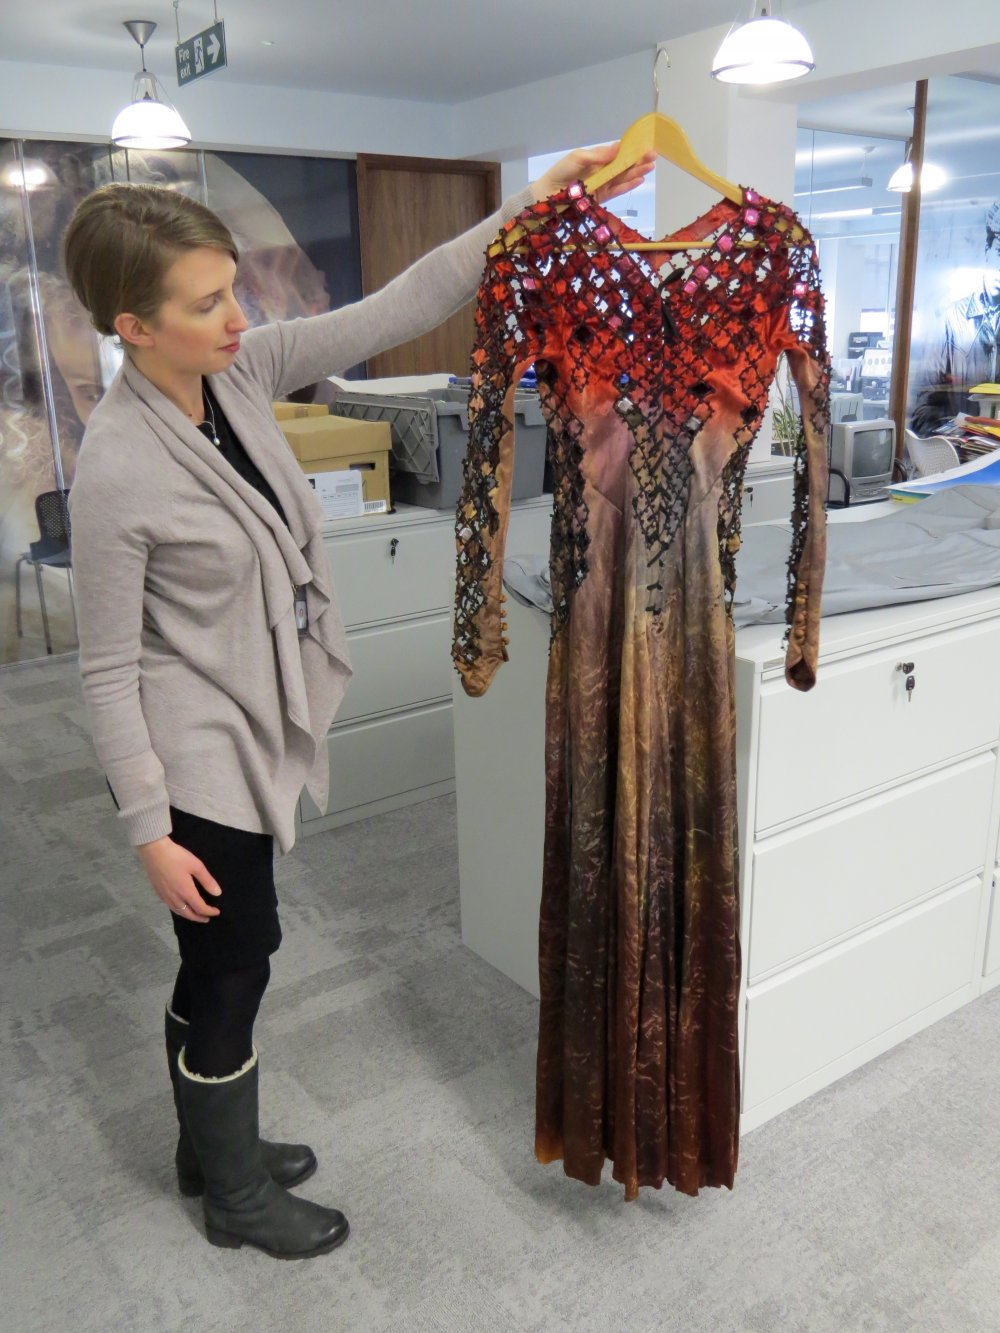 The dress worn by Morgana (Helen Mirren) in Excalibur, designed by Bob Ringwood – on loan from Katrine Boorman